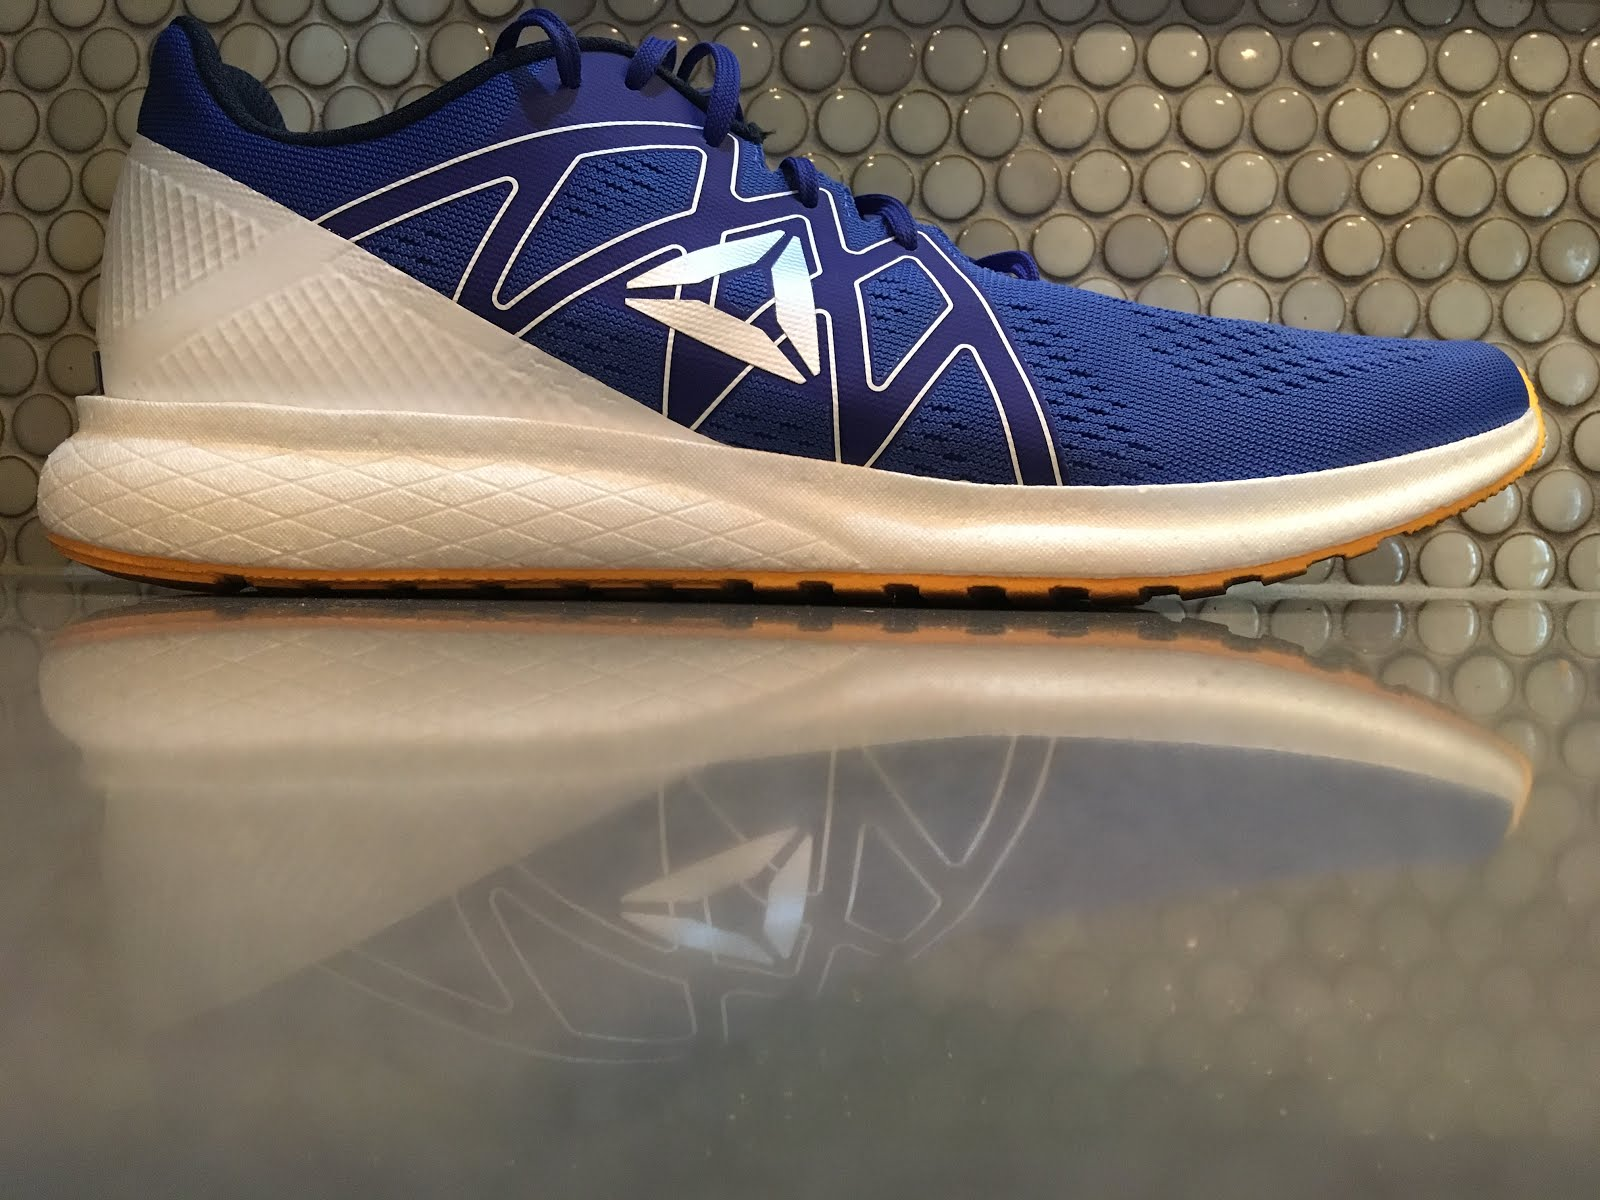 786807375a7 Road Trail Run  Reebok Floatride Energy Forever Initial Review ...